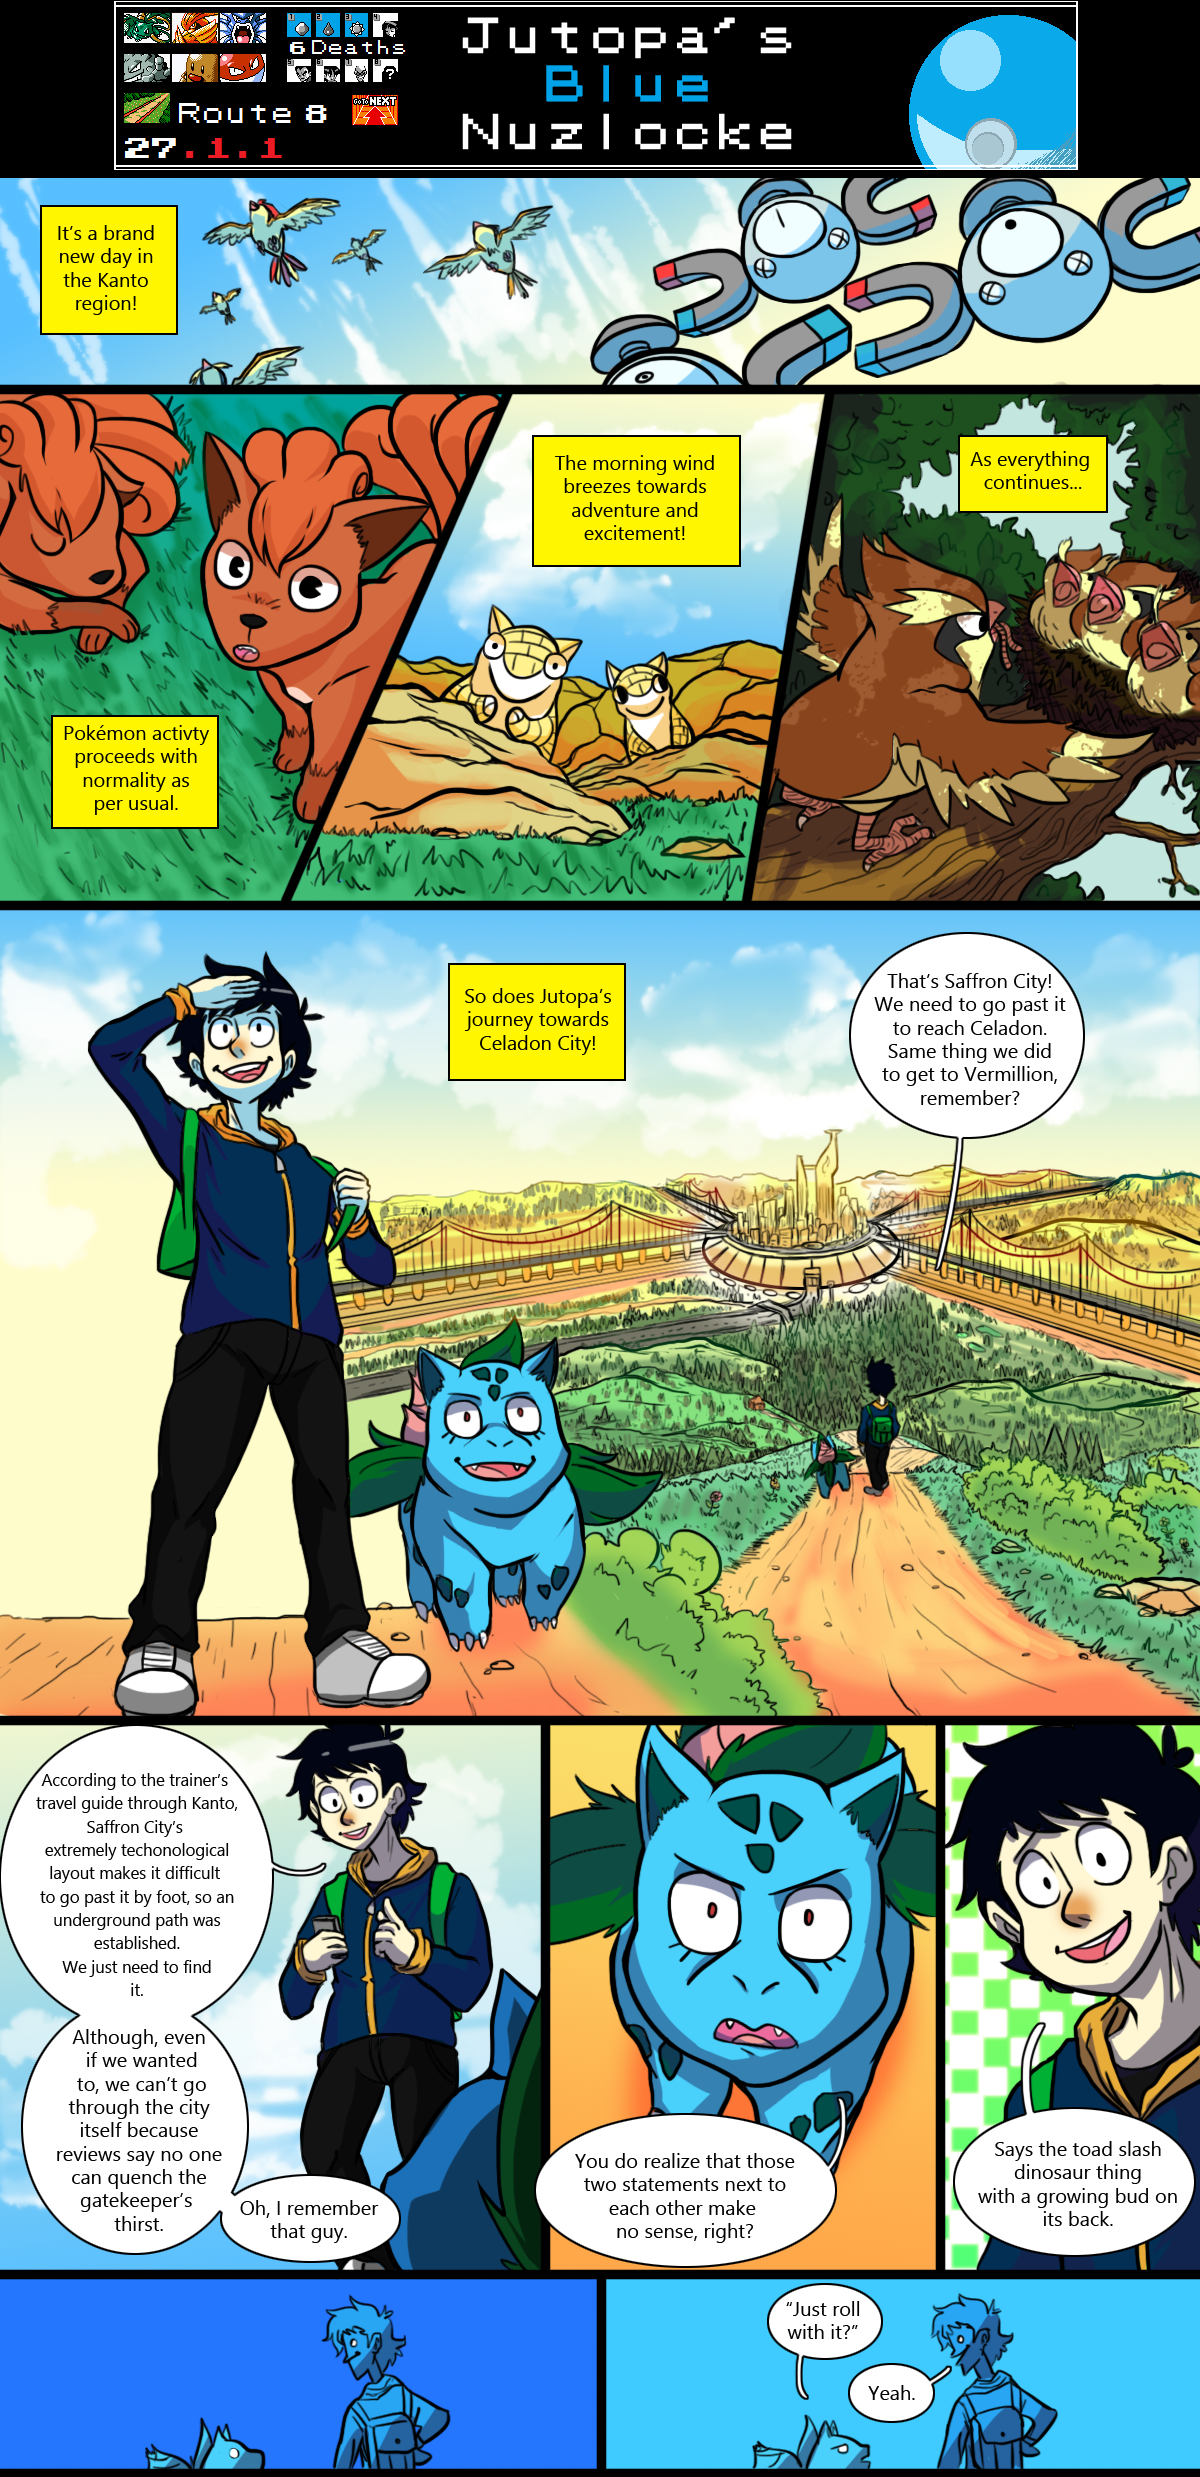 Jutopa's Blue Nuzlocke Chapter 27 - Page 1.1 by Jutopa